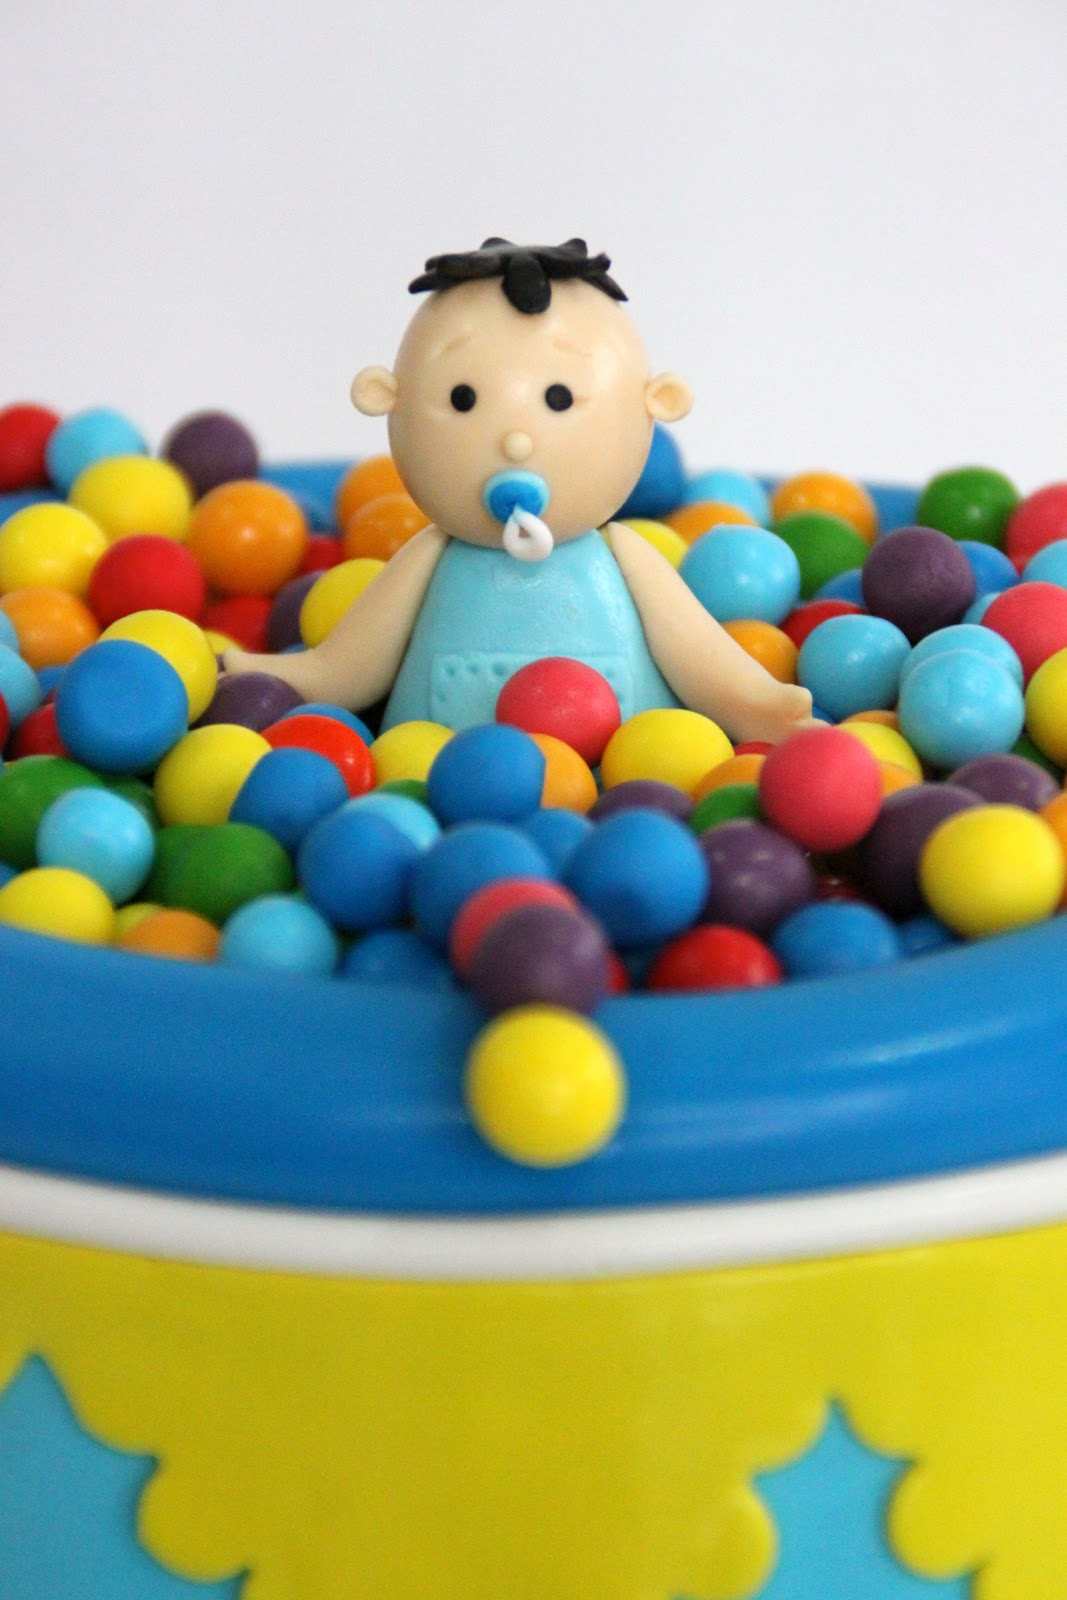 Baby In Ball Pit Cake